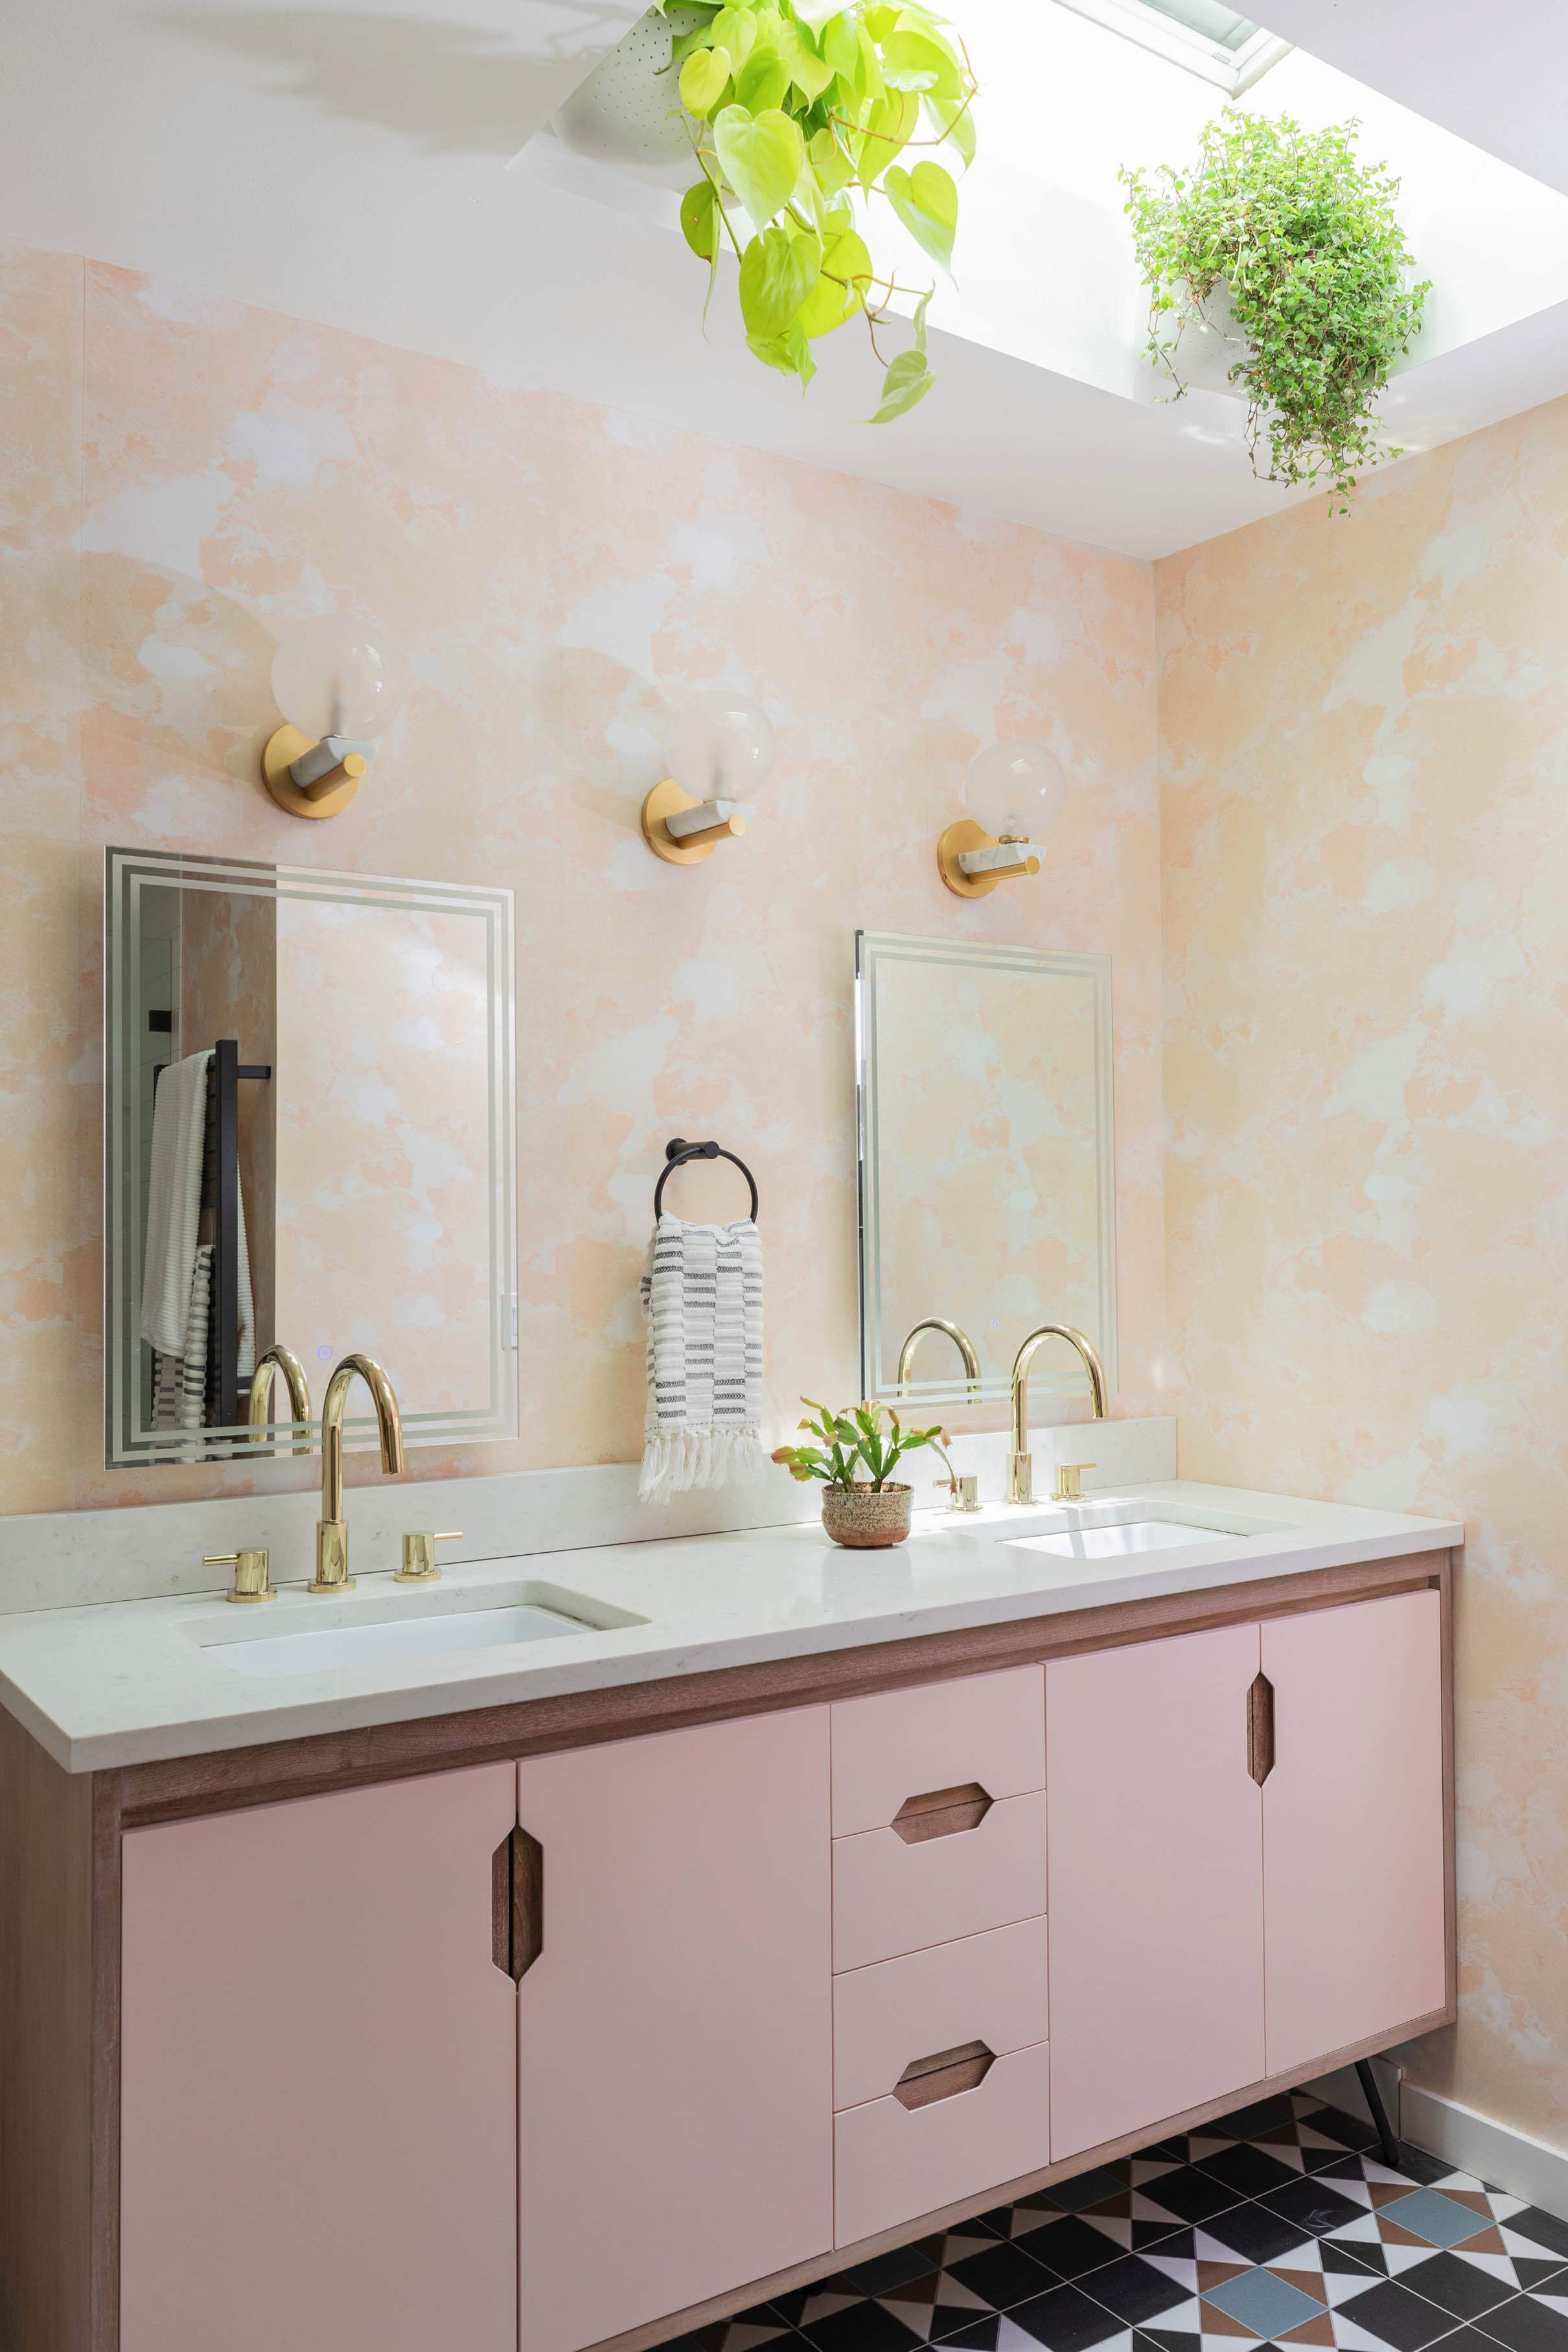 A blush colored bathroom with pink double vanity and a skylight that has plants hanging from it.